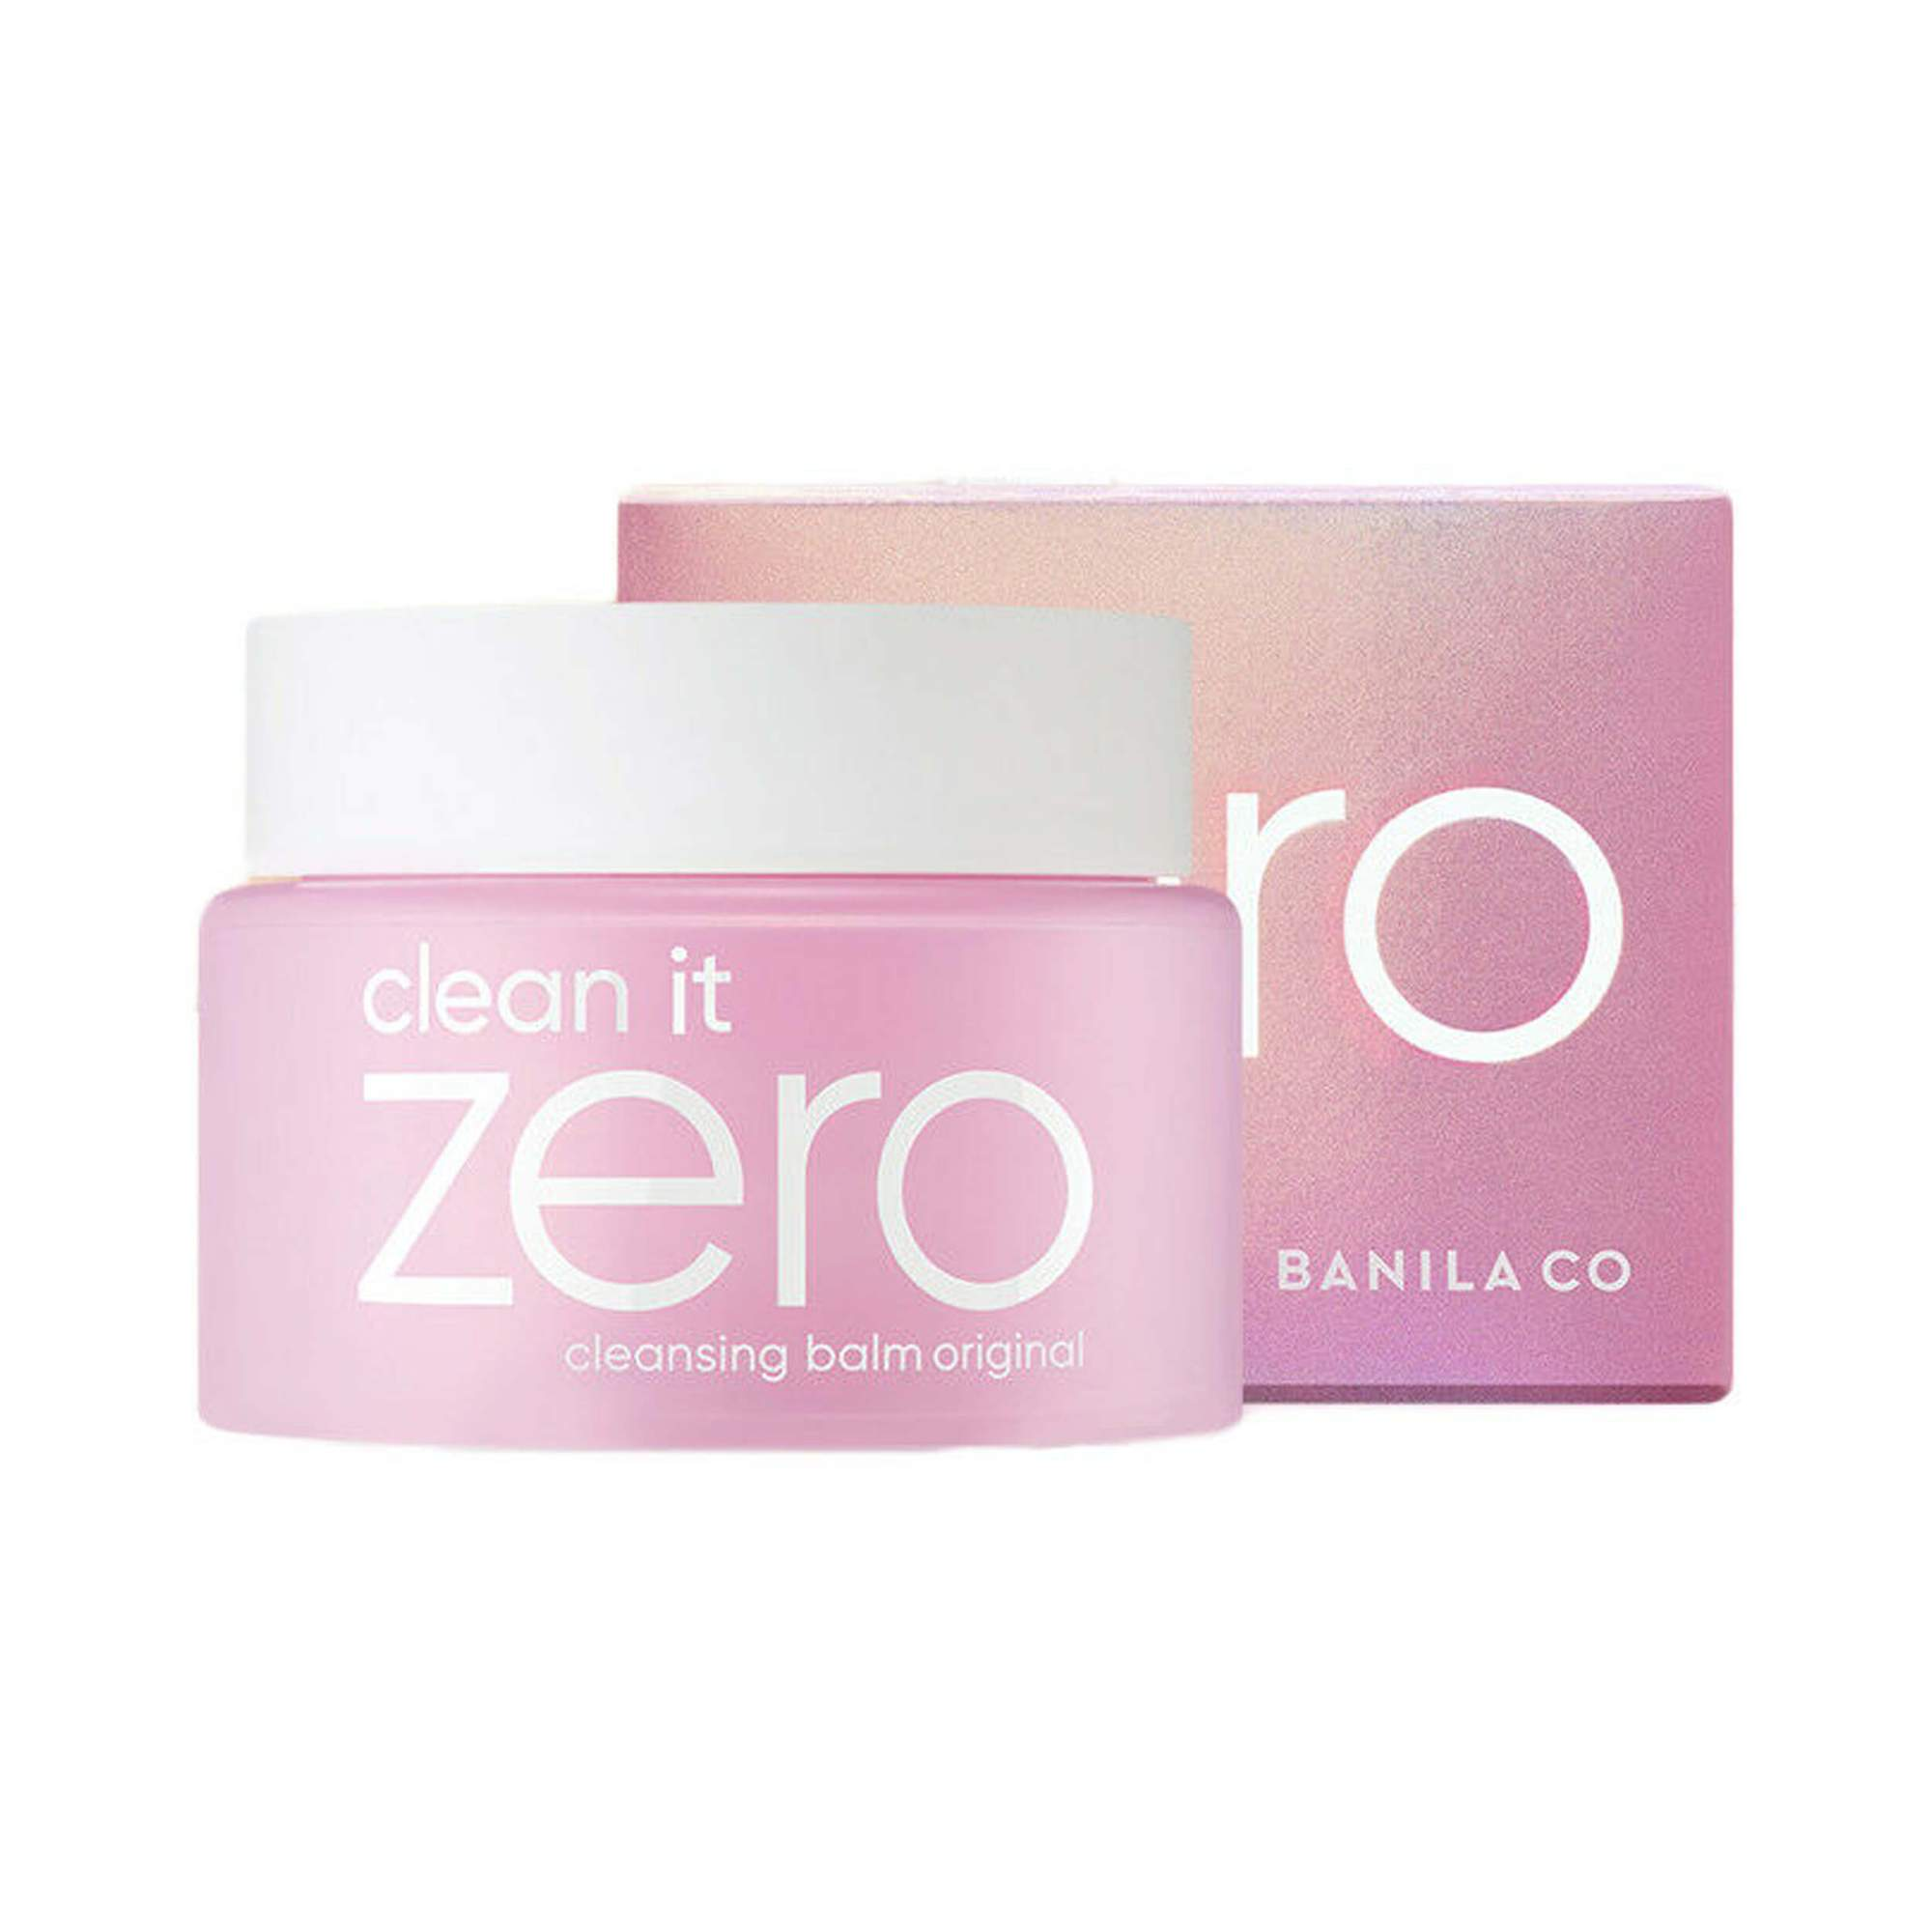 Banila co - Clean It Zero Cleaning Balm 100ml